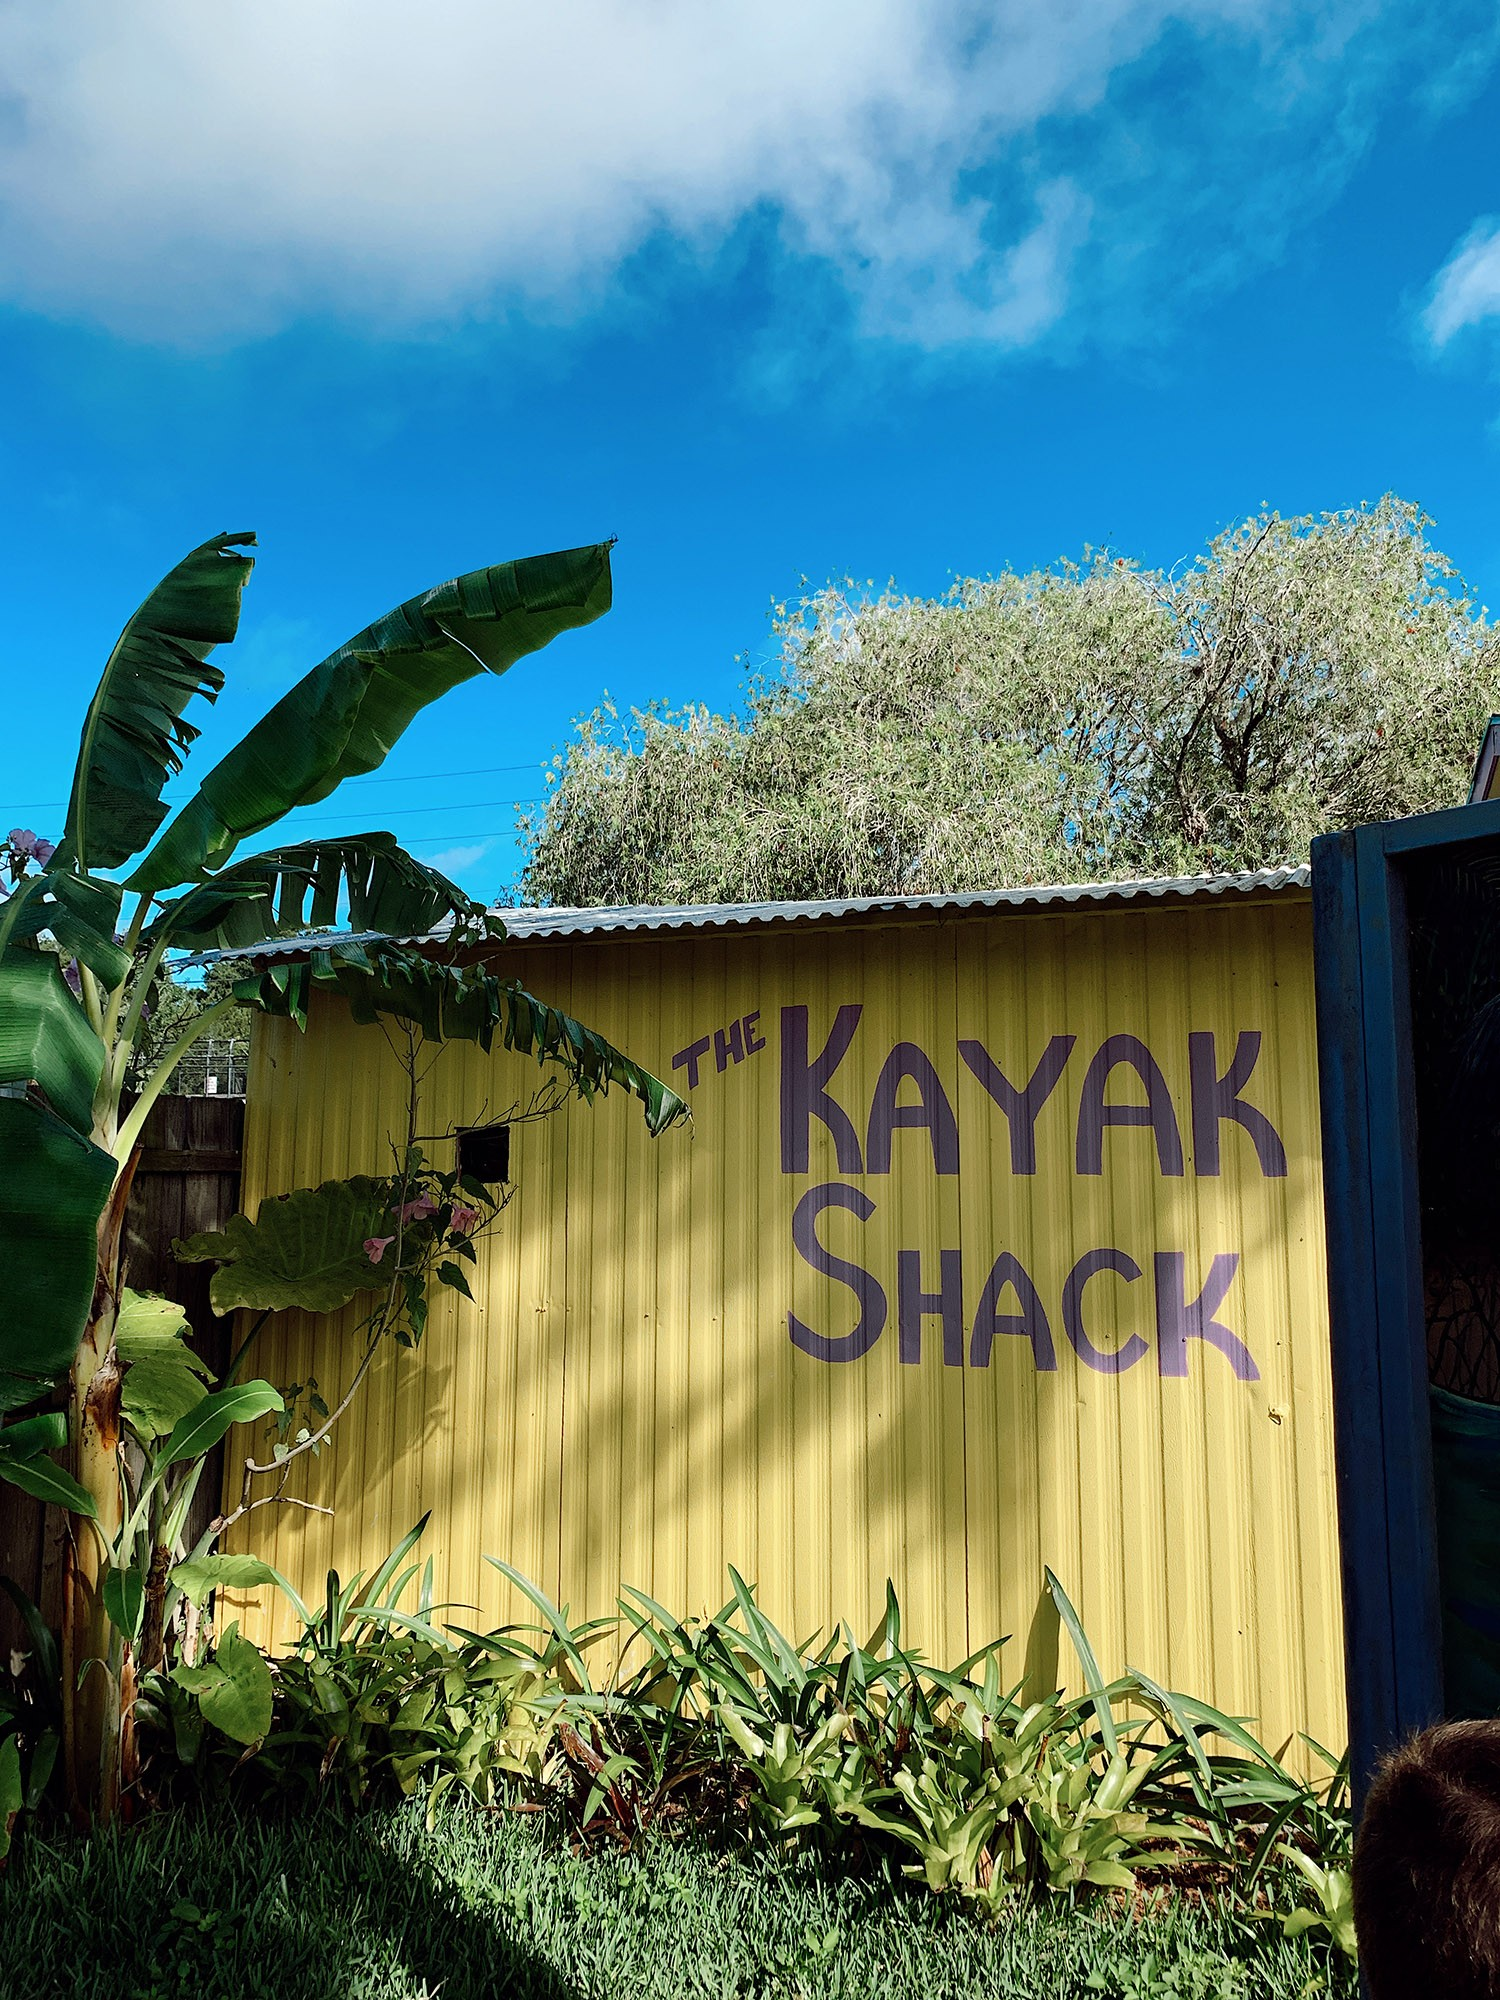 Tips for an Amazing Weeki Wachee Kayaking Florida Staycation. Visit Florida Travel ideas from top lifestyle blogger Tabitha Blue of Fresh Mommy Blog.   Weeki Wachee Kayaking by popular Florida blog, Fresh Mommy Blog: image of The Kayak Shack.